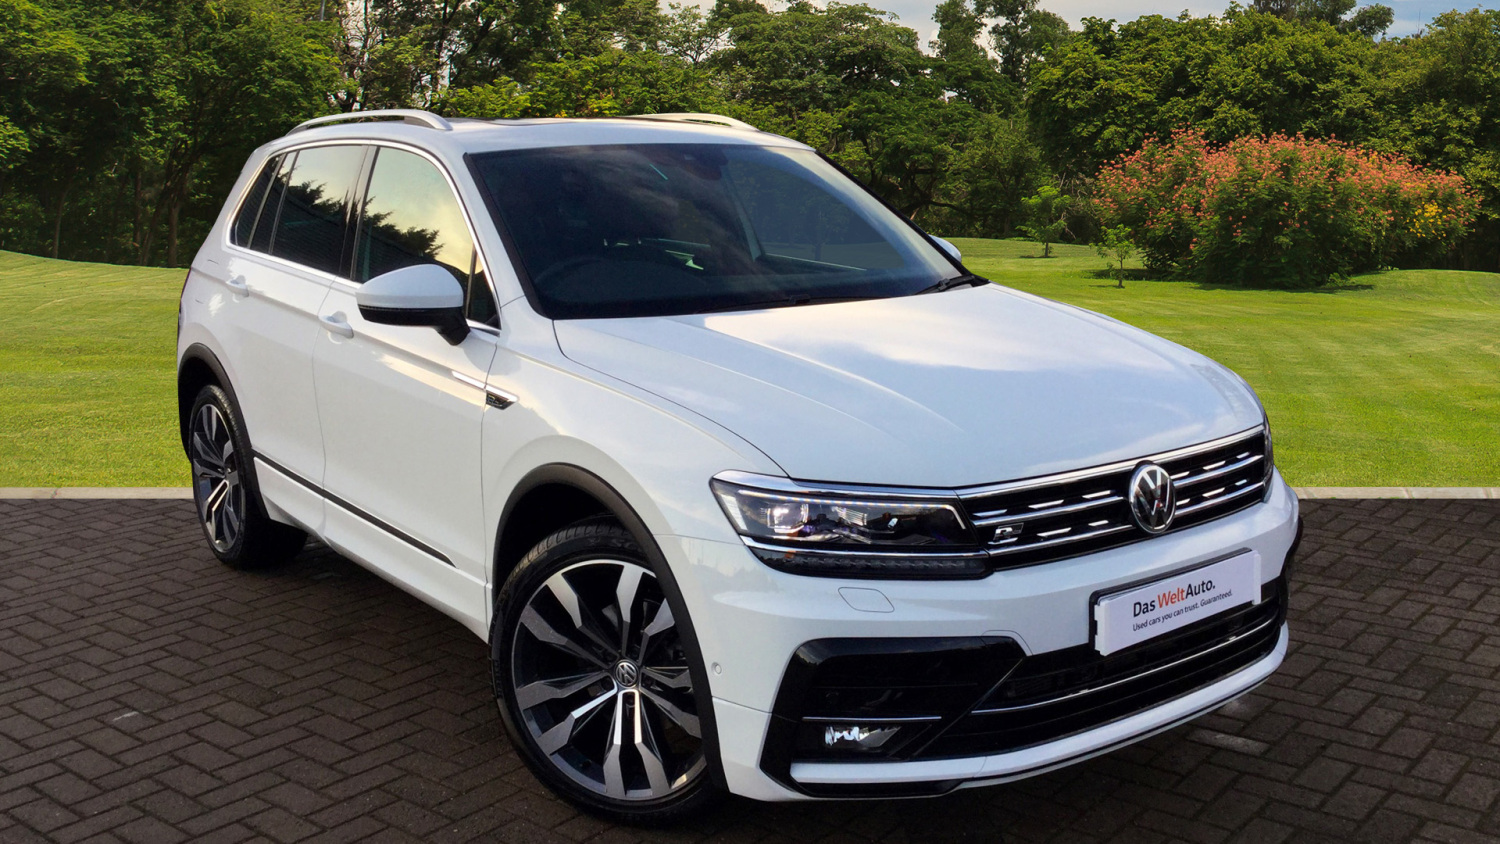 used volkswagen tiguan 2 0 tdi bmt 150 4motion r line 5dr dsg diesel estate for sale in scotland. Black Bedroom Furniture Sets. Home Design Ideas